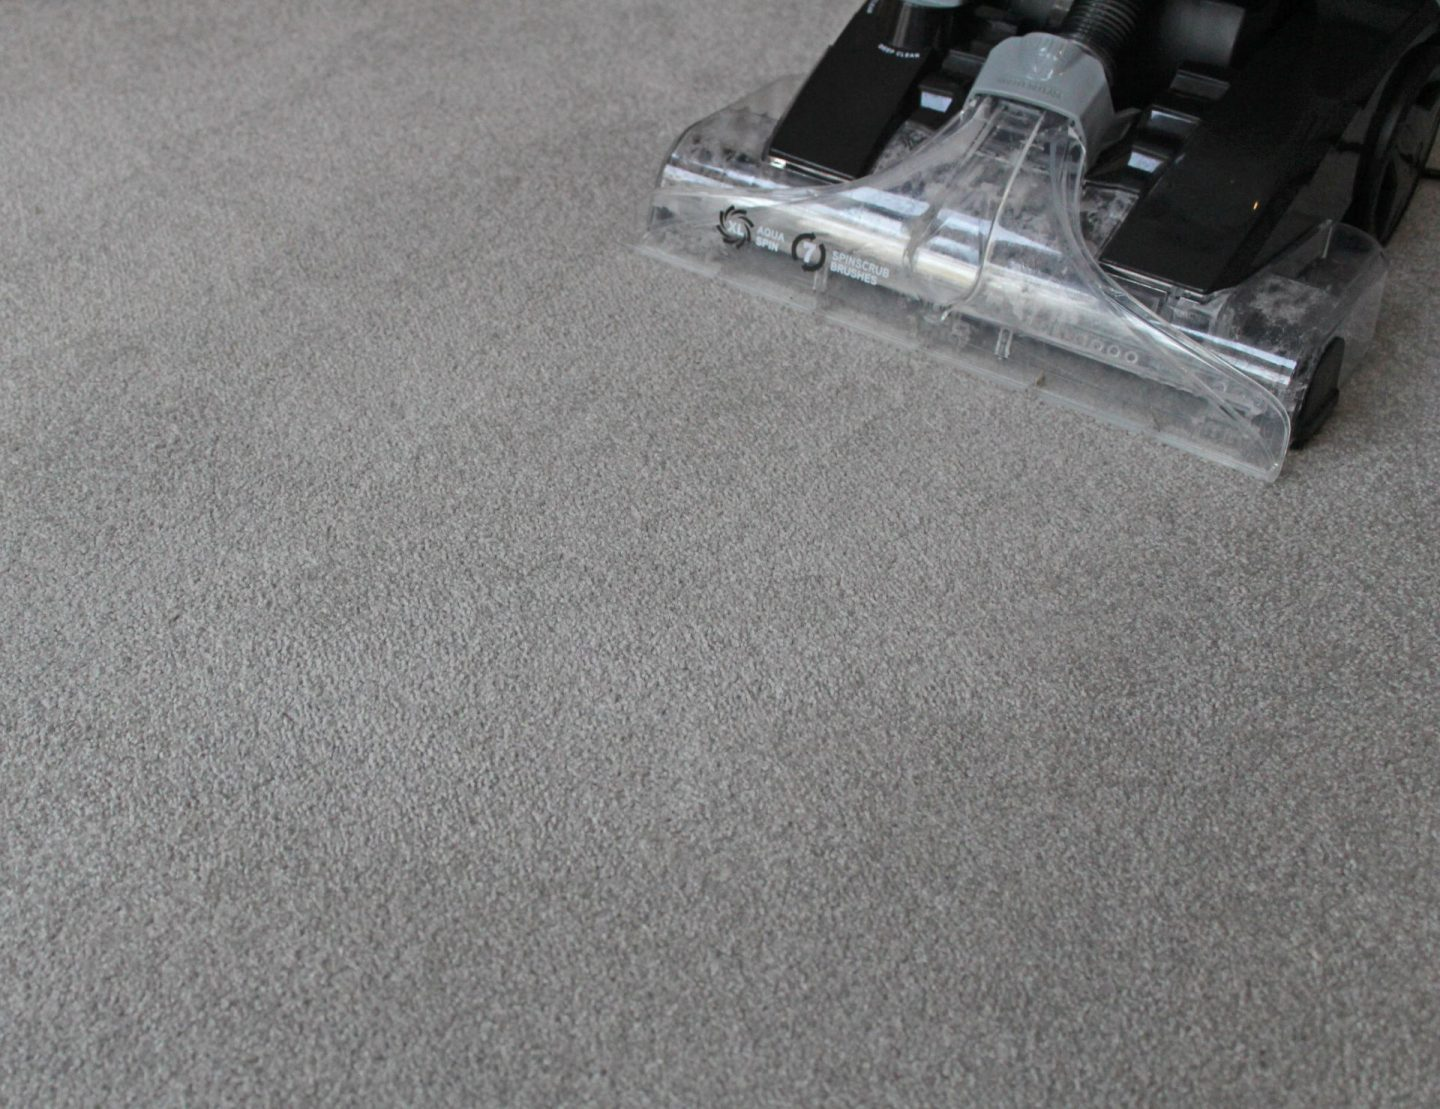 clean carpet, after shot, parenting, family life, family time